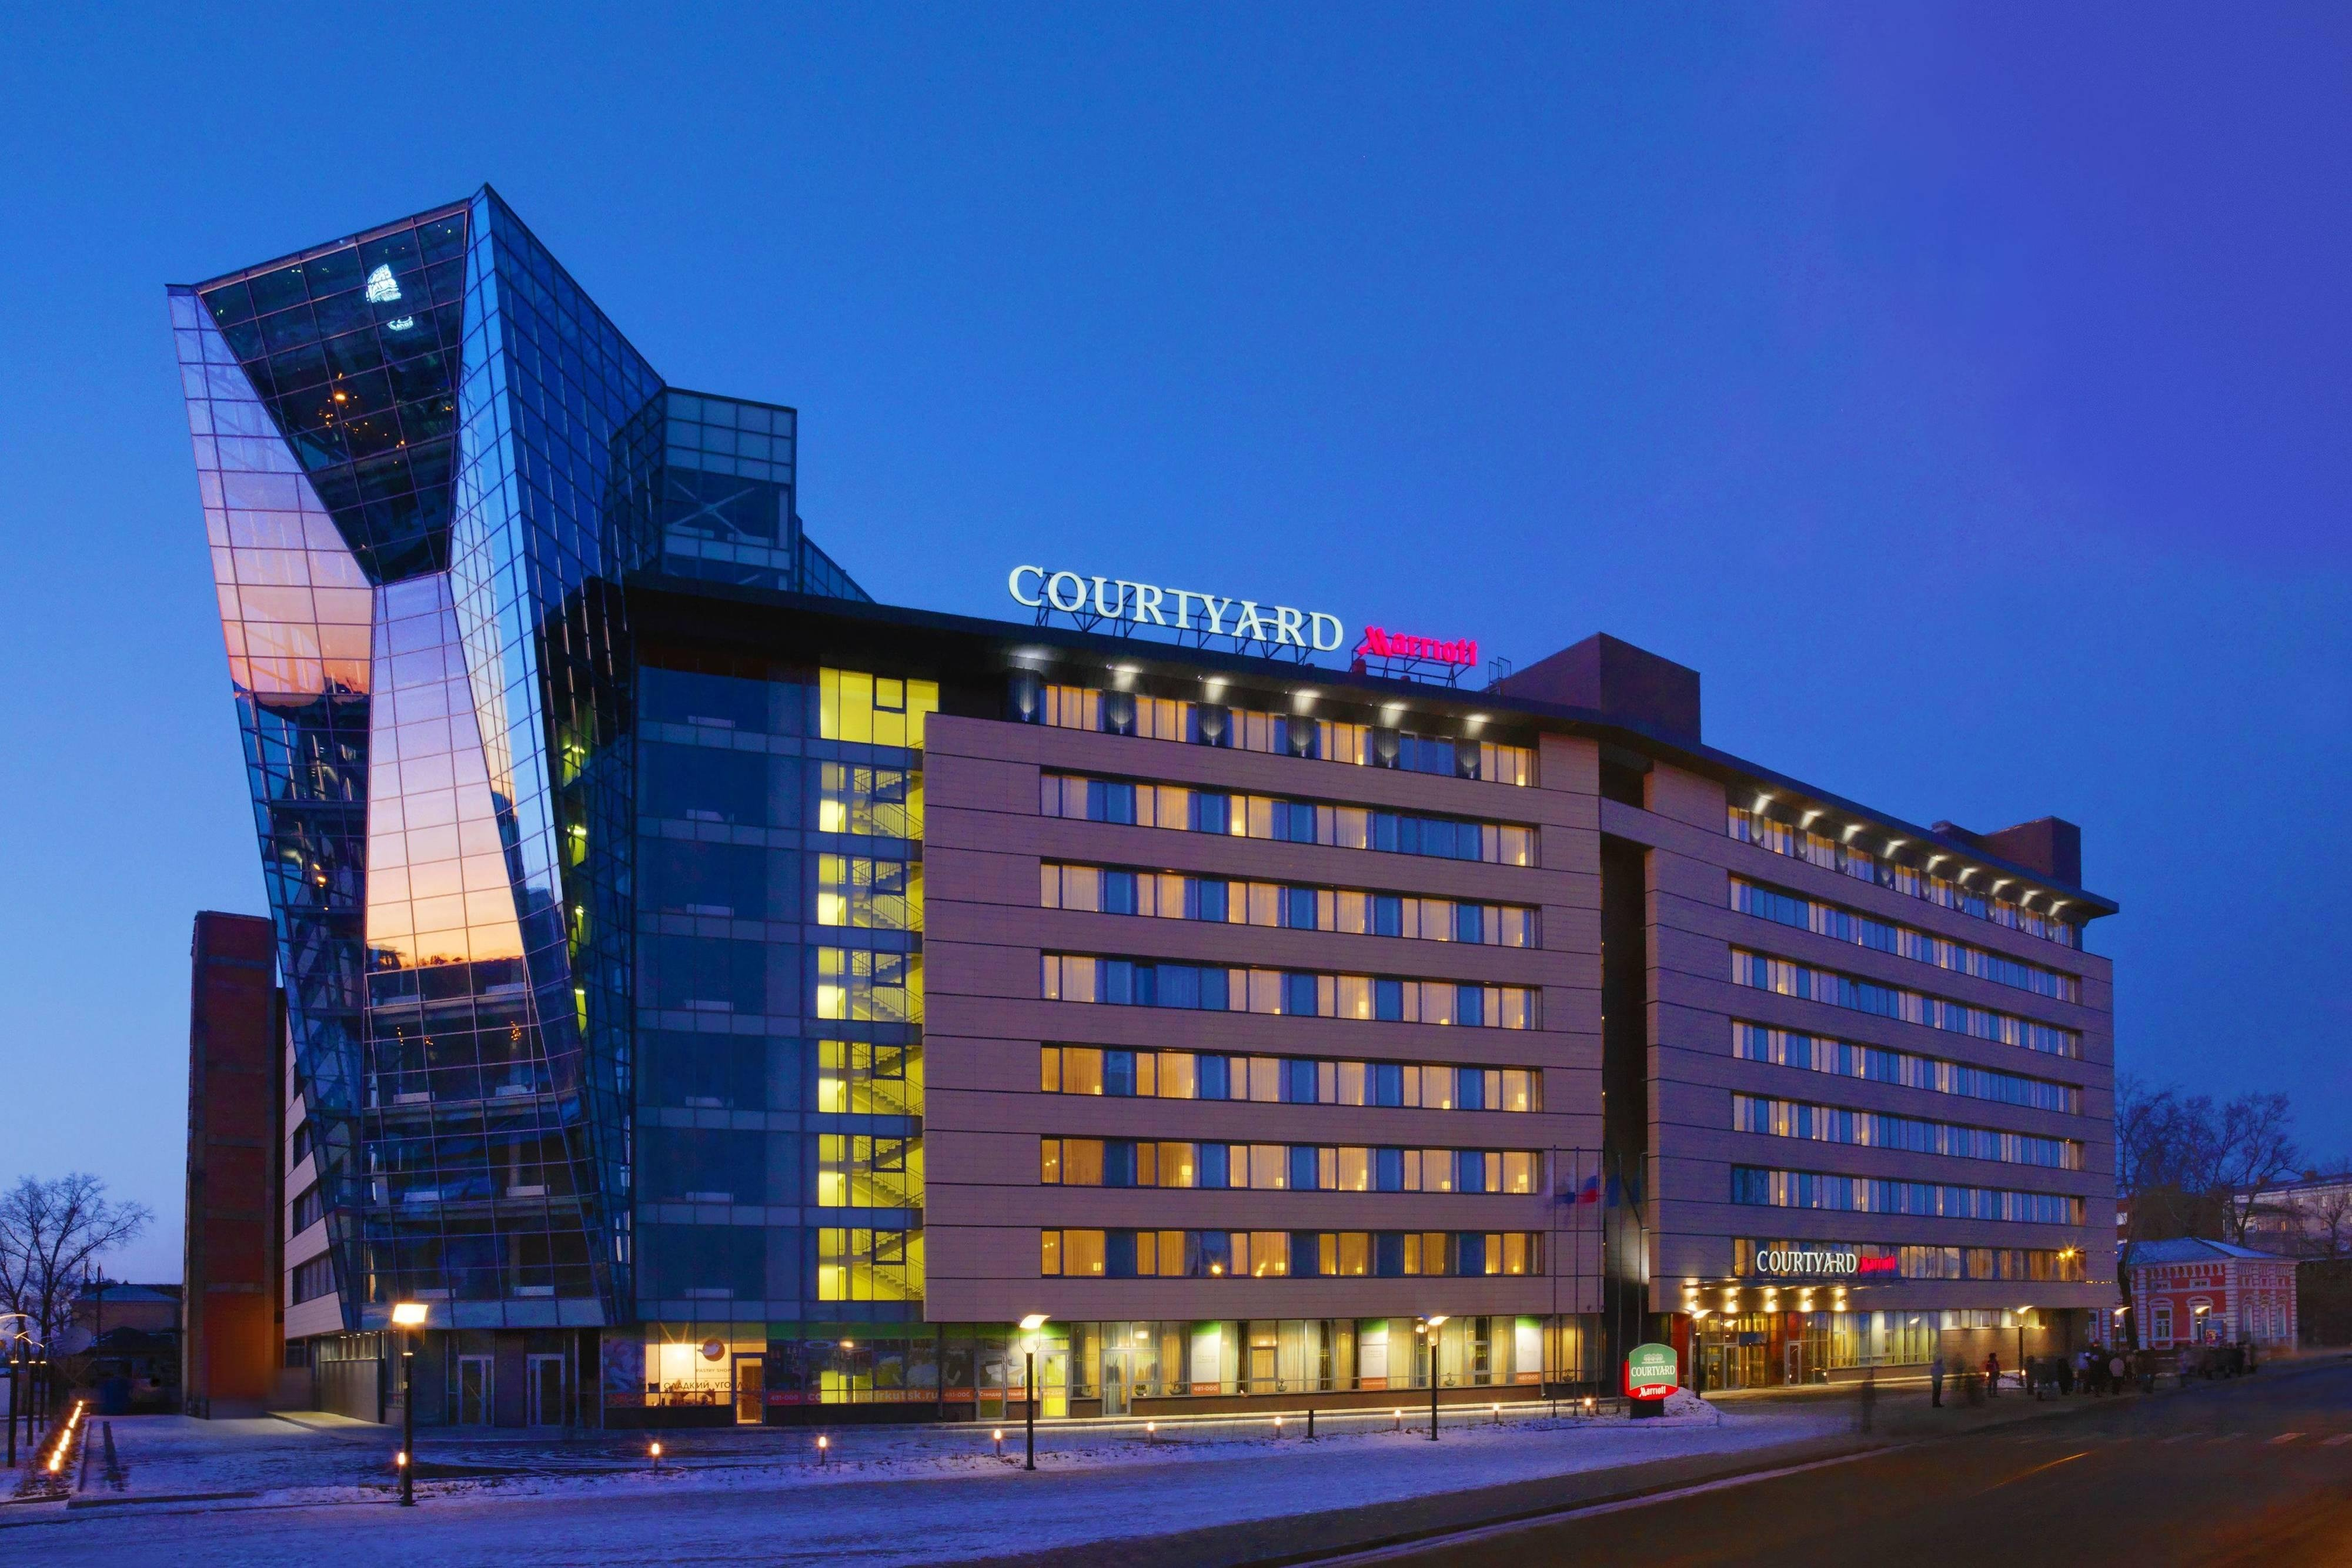 Courtyard Irkutsk Marriott